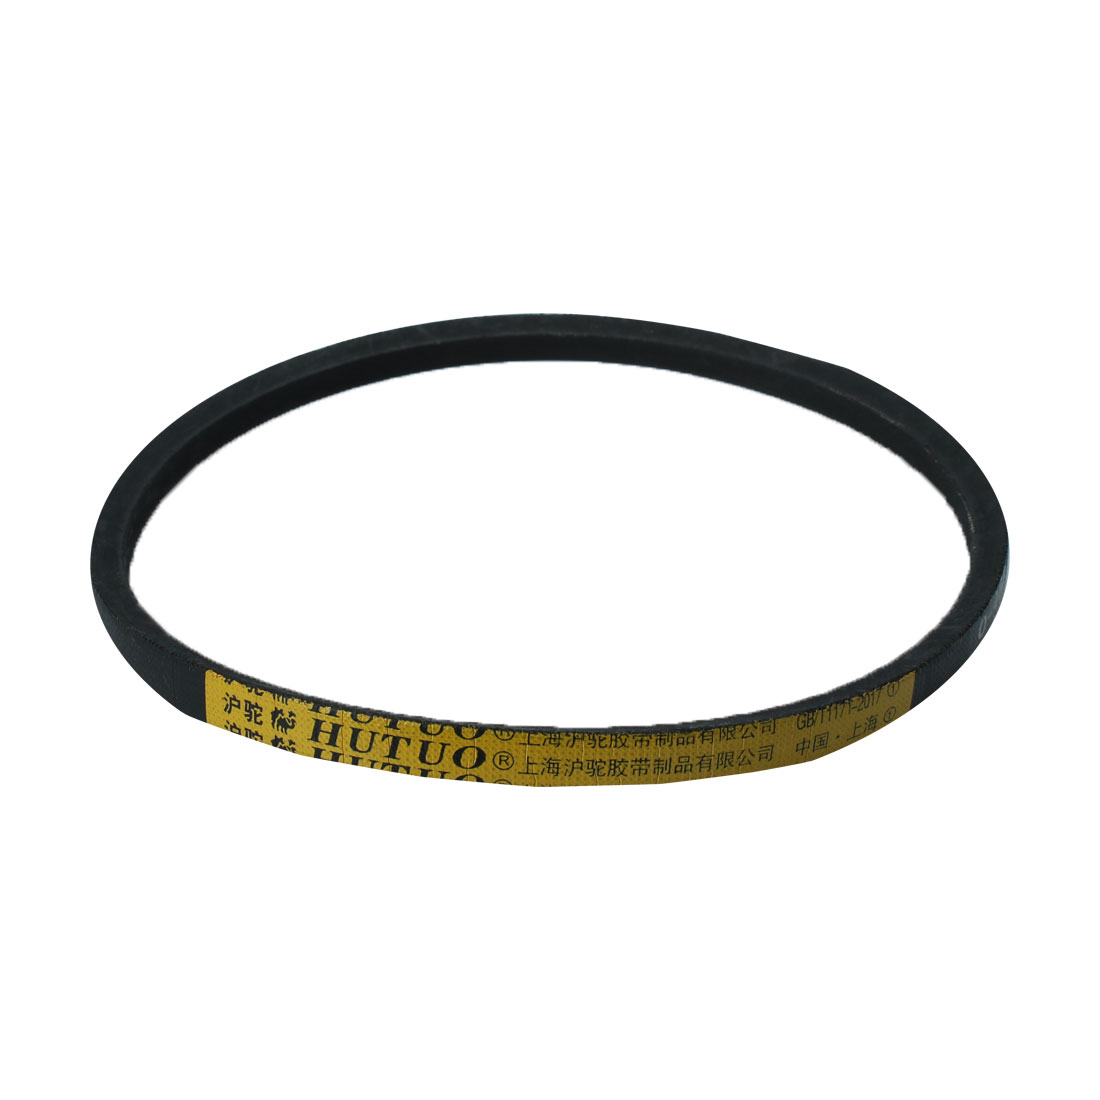 Black Washing Machine Motor O Type Belt Fiting Girth 468mm O-468E